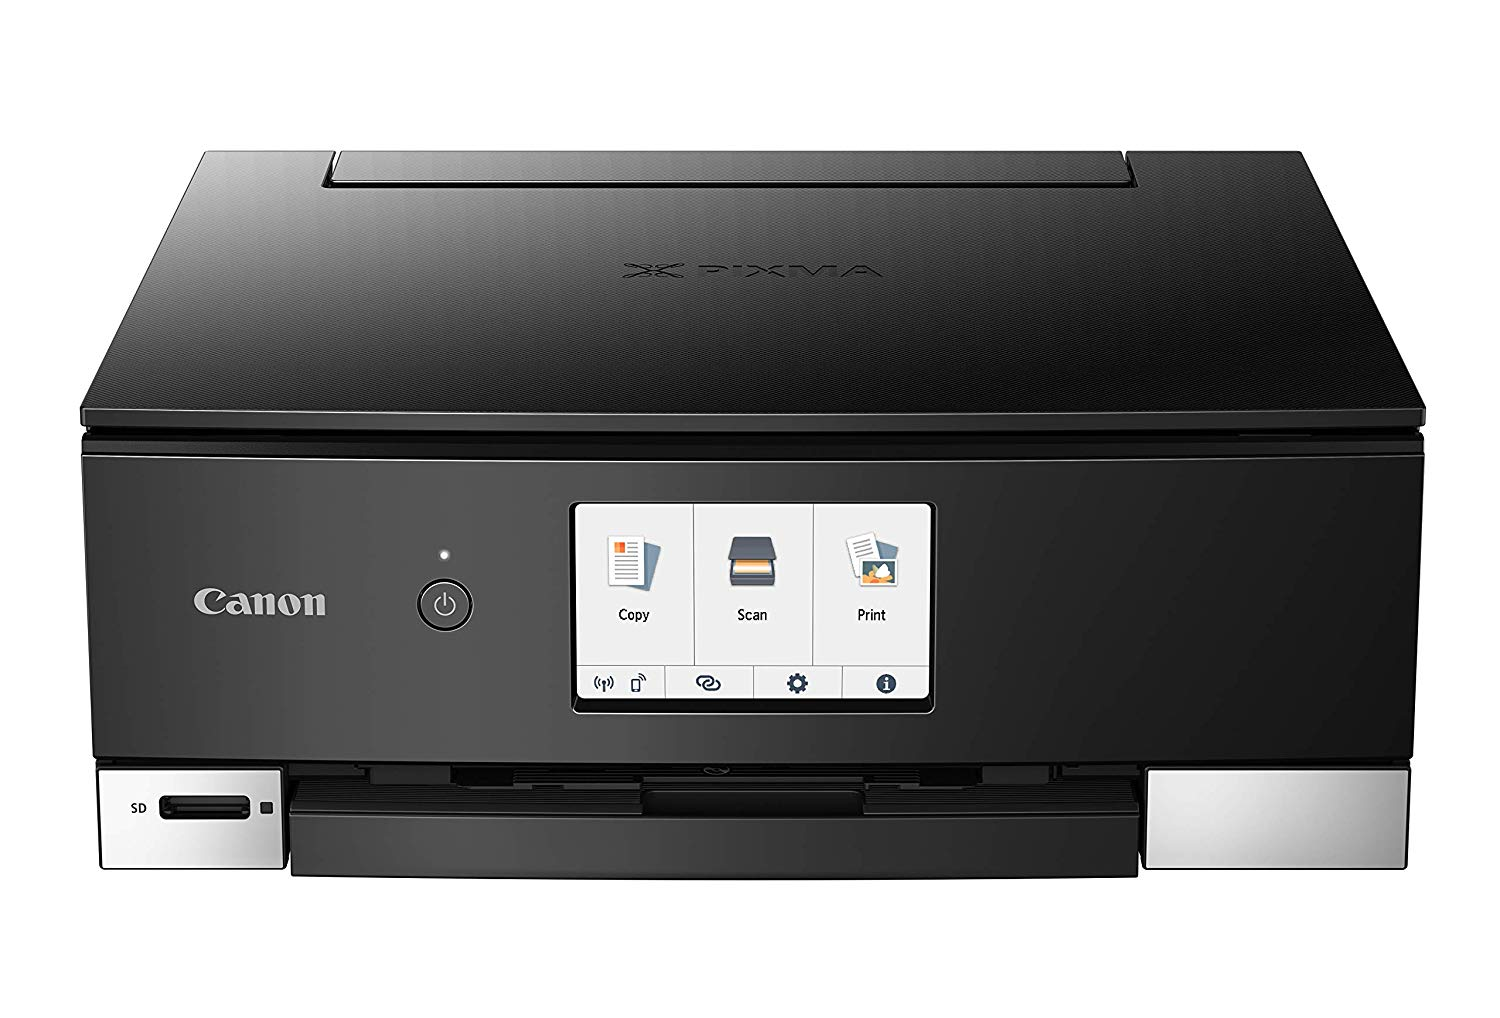 Canon PIXMA TS8320 printer